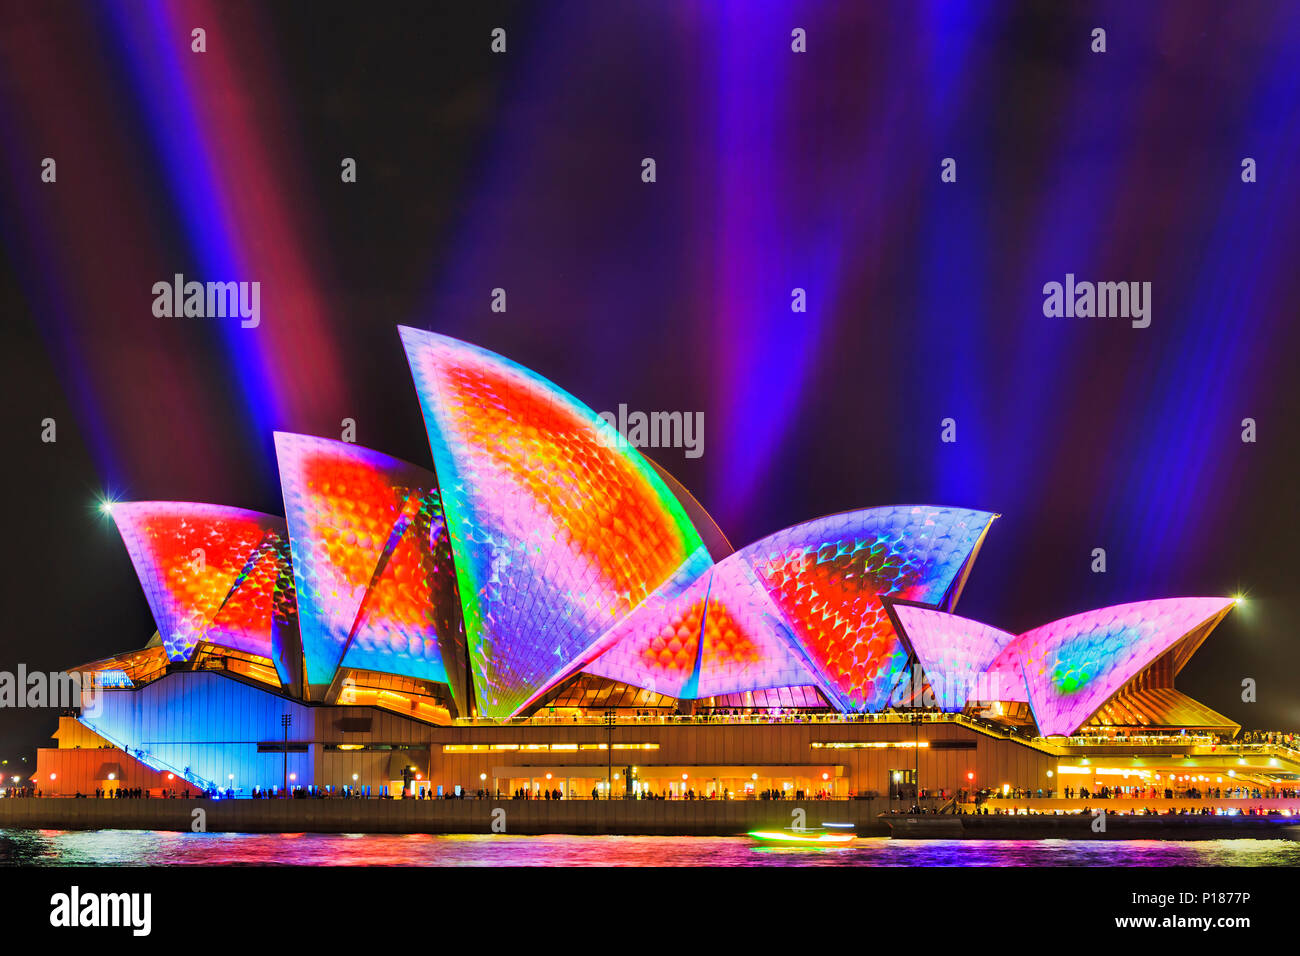 Sydney, Australia - 25 May, 2018: Sydney city landmark of Sydney Opera House at harbour waterfront light painted during annual light show of music, li - Stock Image